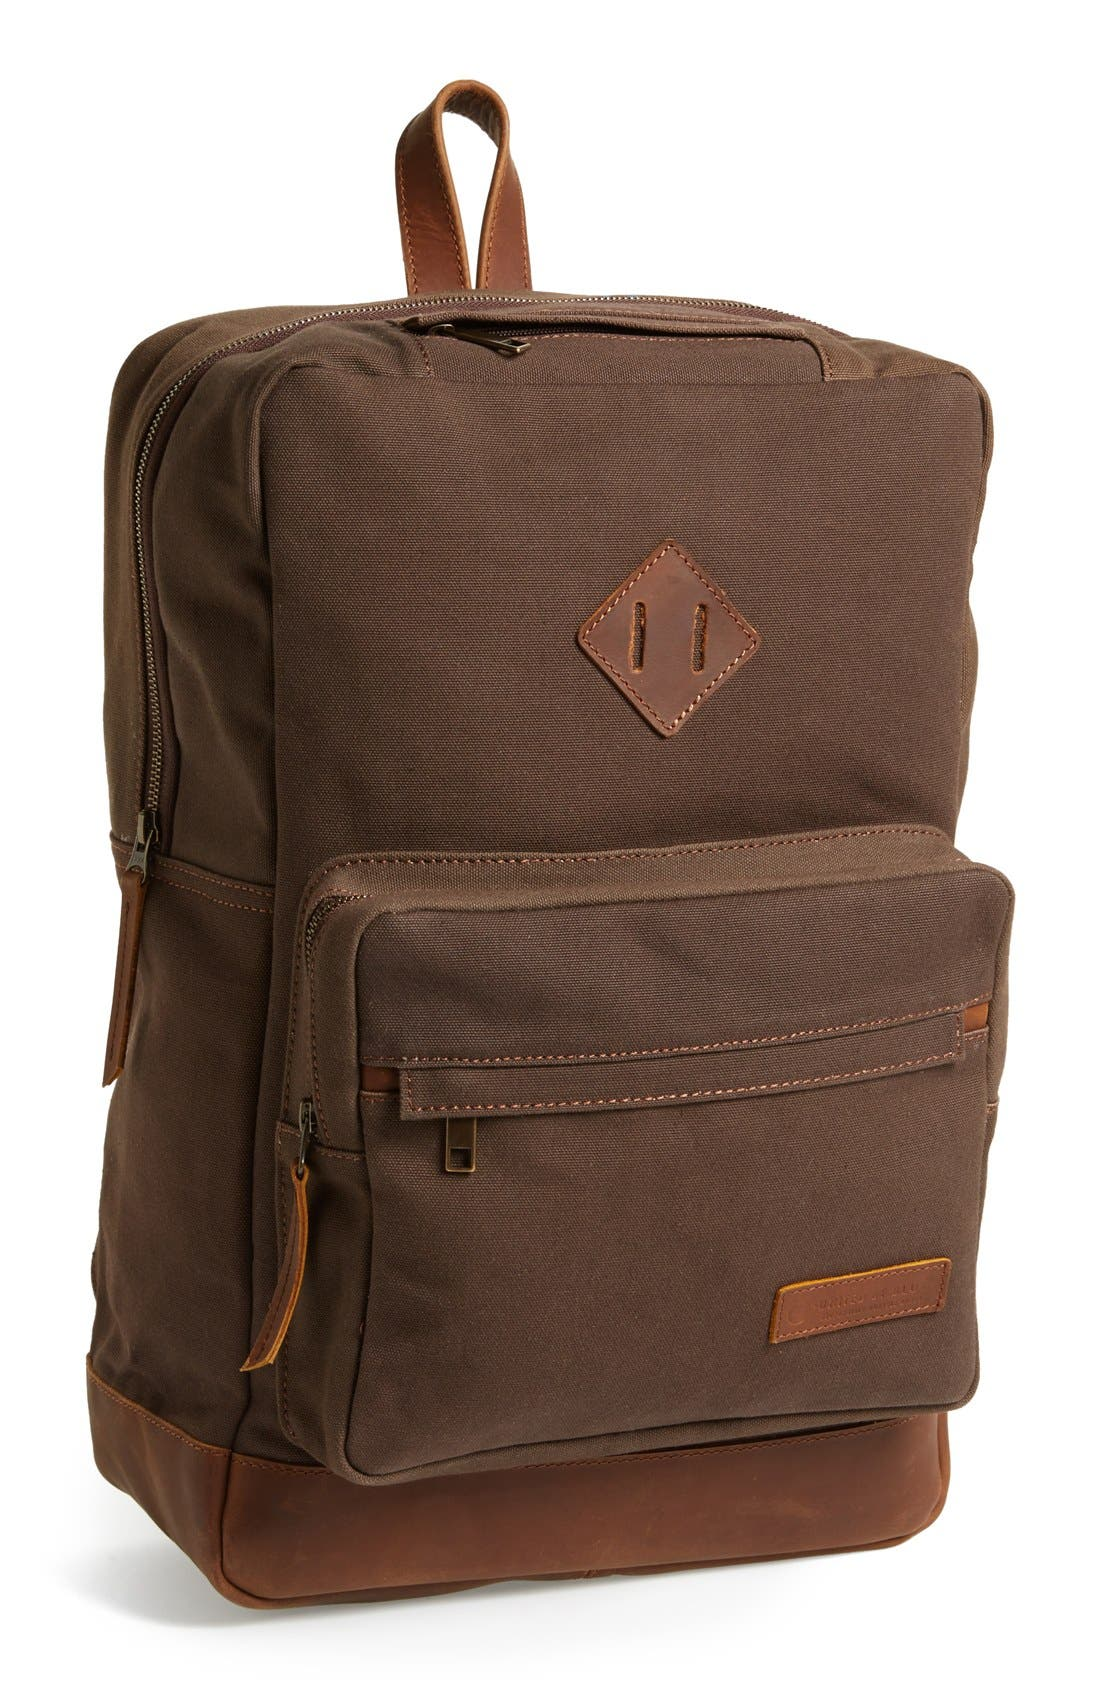 'Hudderton' Backpack,                             Main thumbnail 1, color,                             200